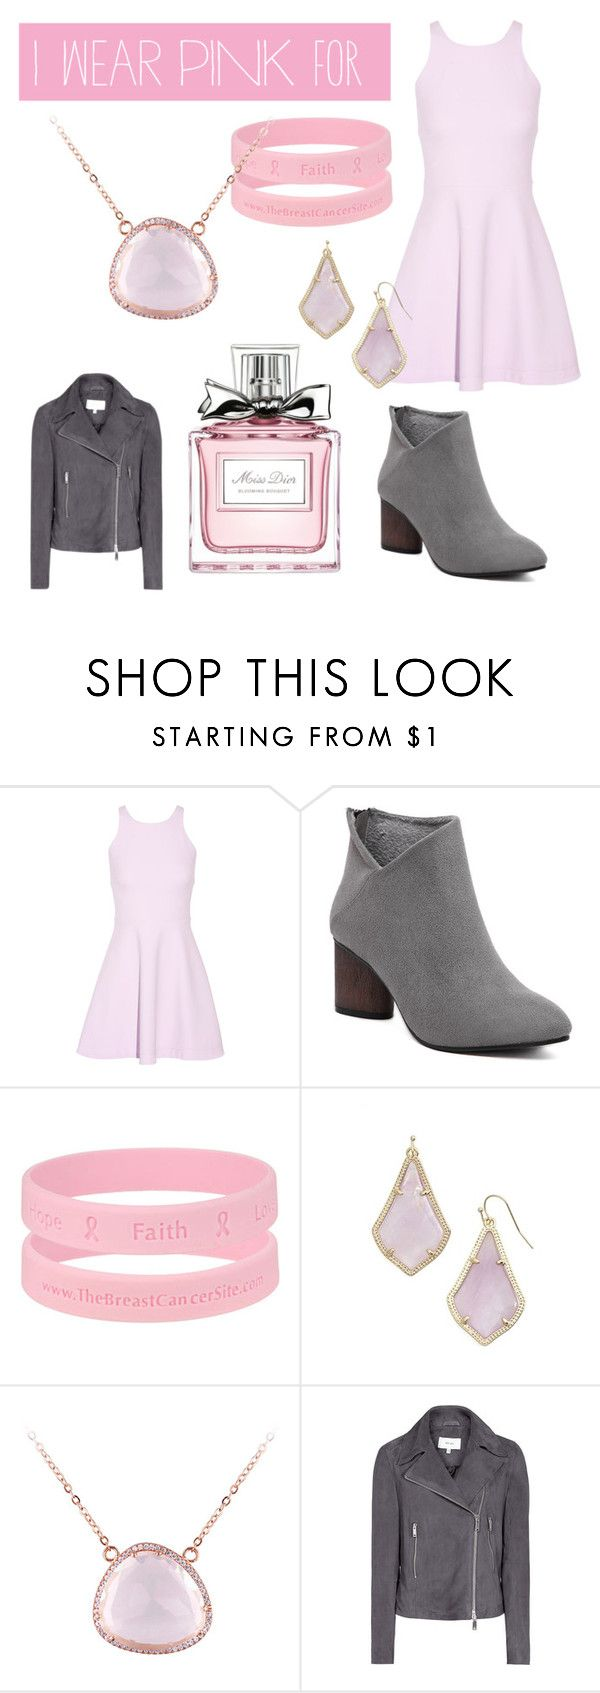 """""""I wear pink for Jesse Graff"""" by mandy-921 ❤ liked on Polyvore featuring Elizabeth and James, Kendra Scott, Christian Dior and IWearPinkFor"""